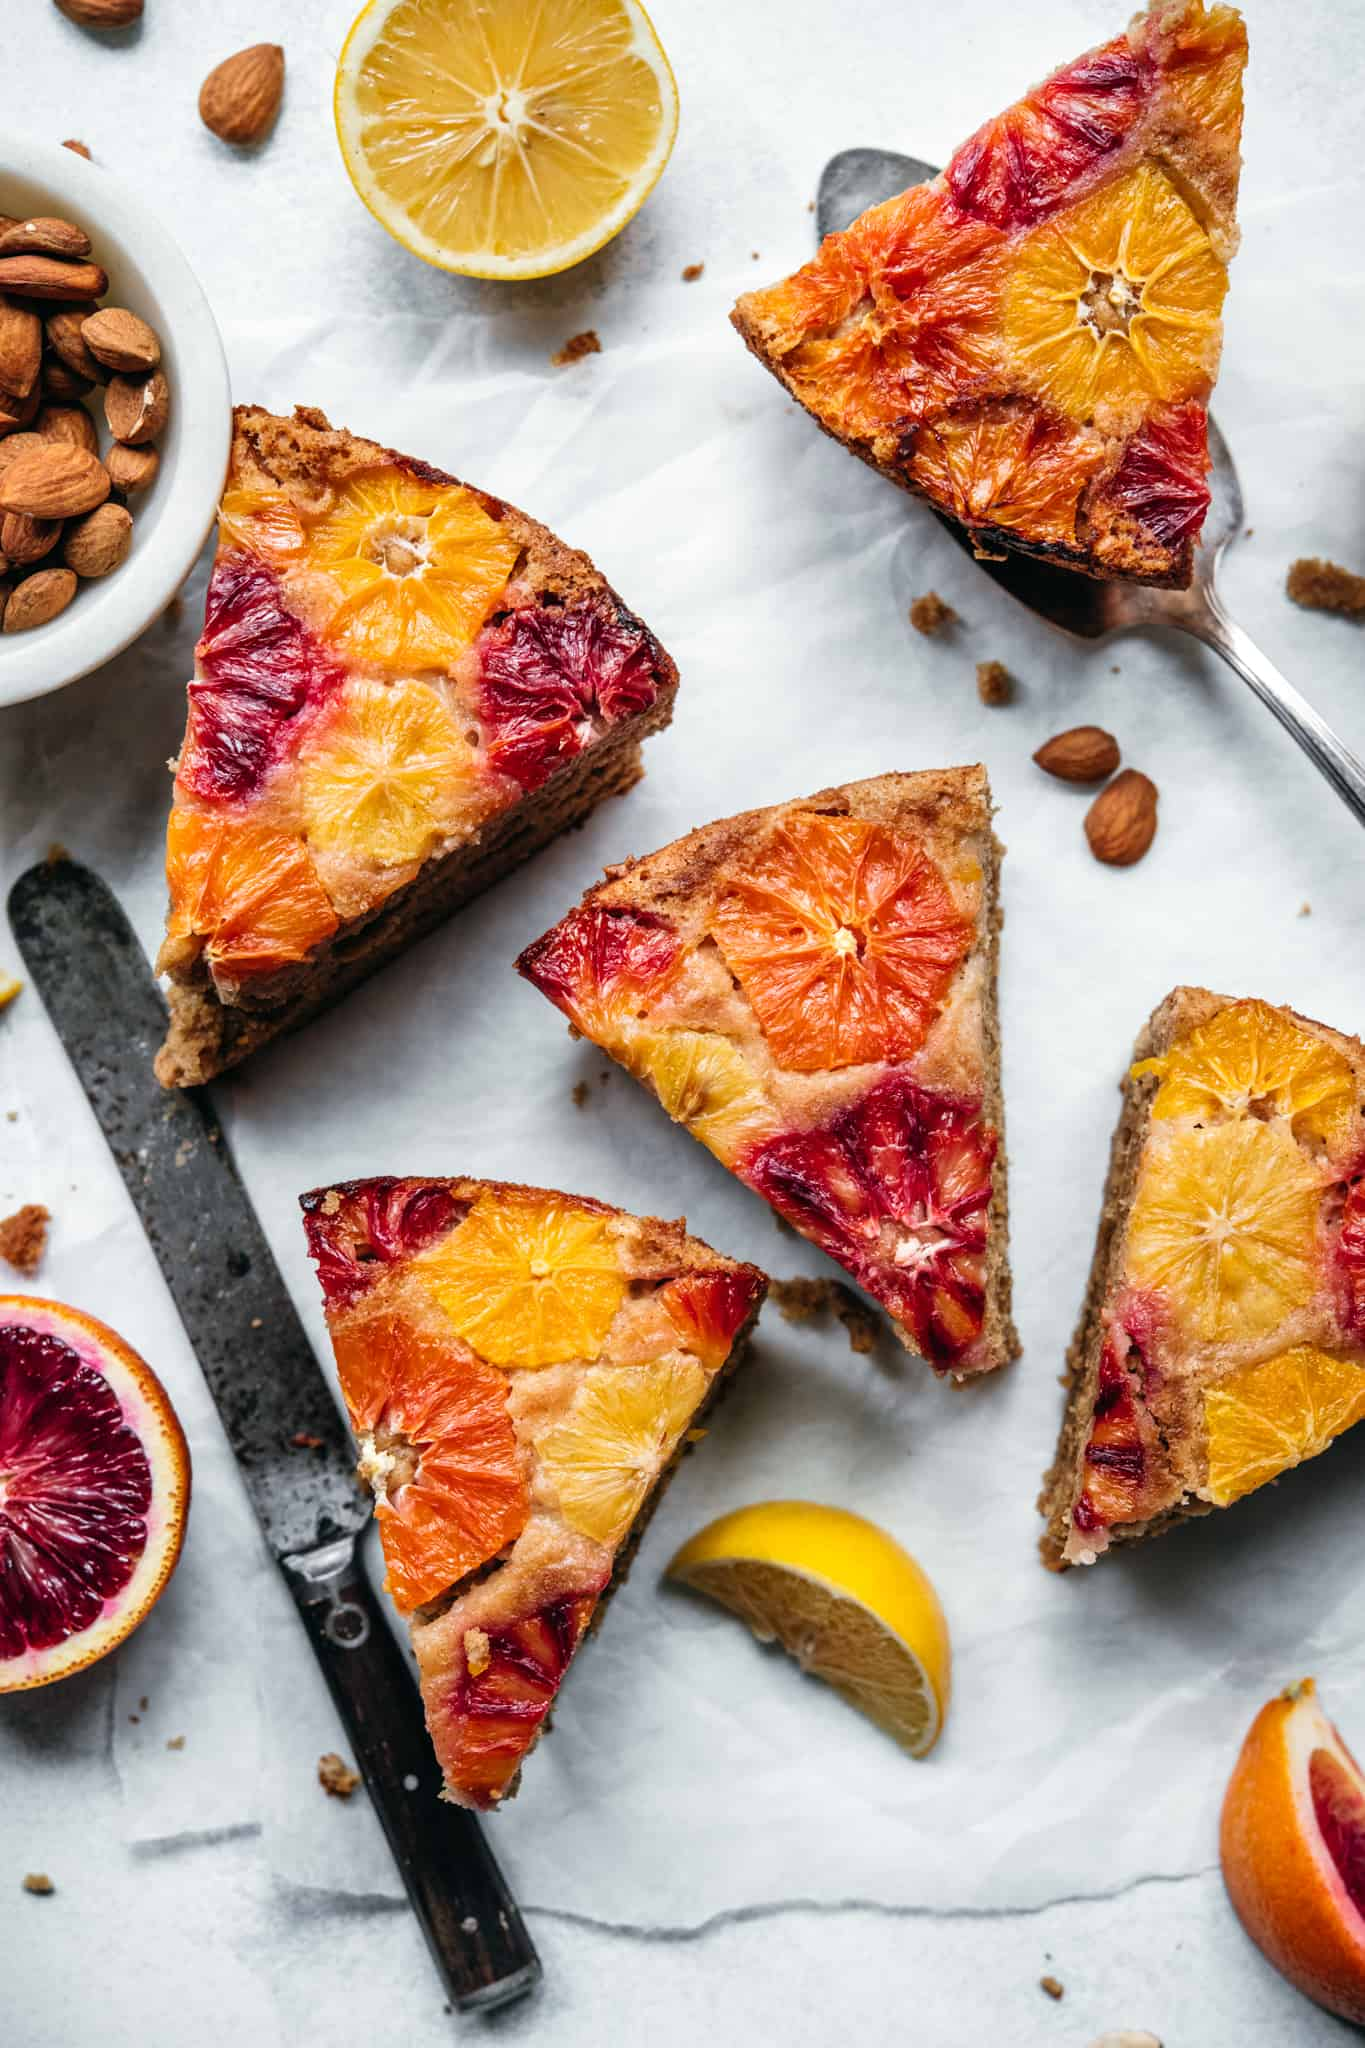 overhead view of slices of gluten free and vegan olive oil cake with citrus on top